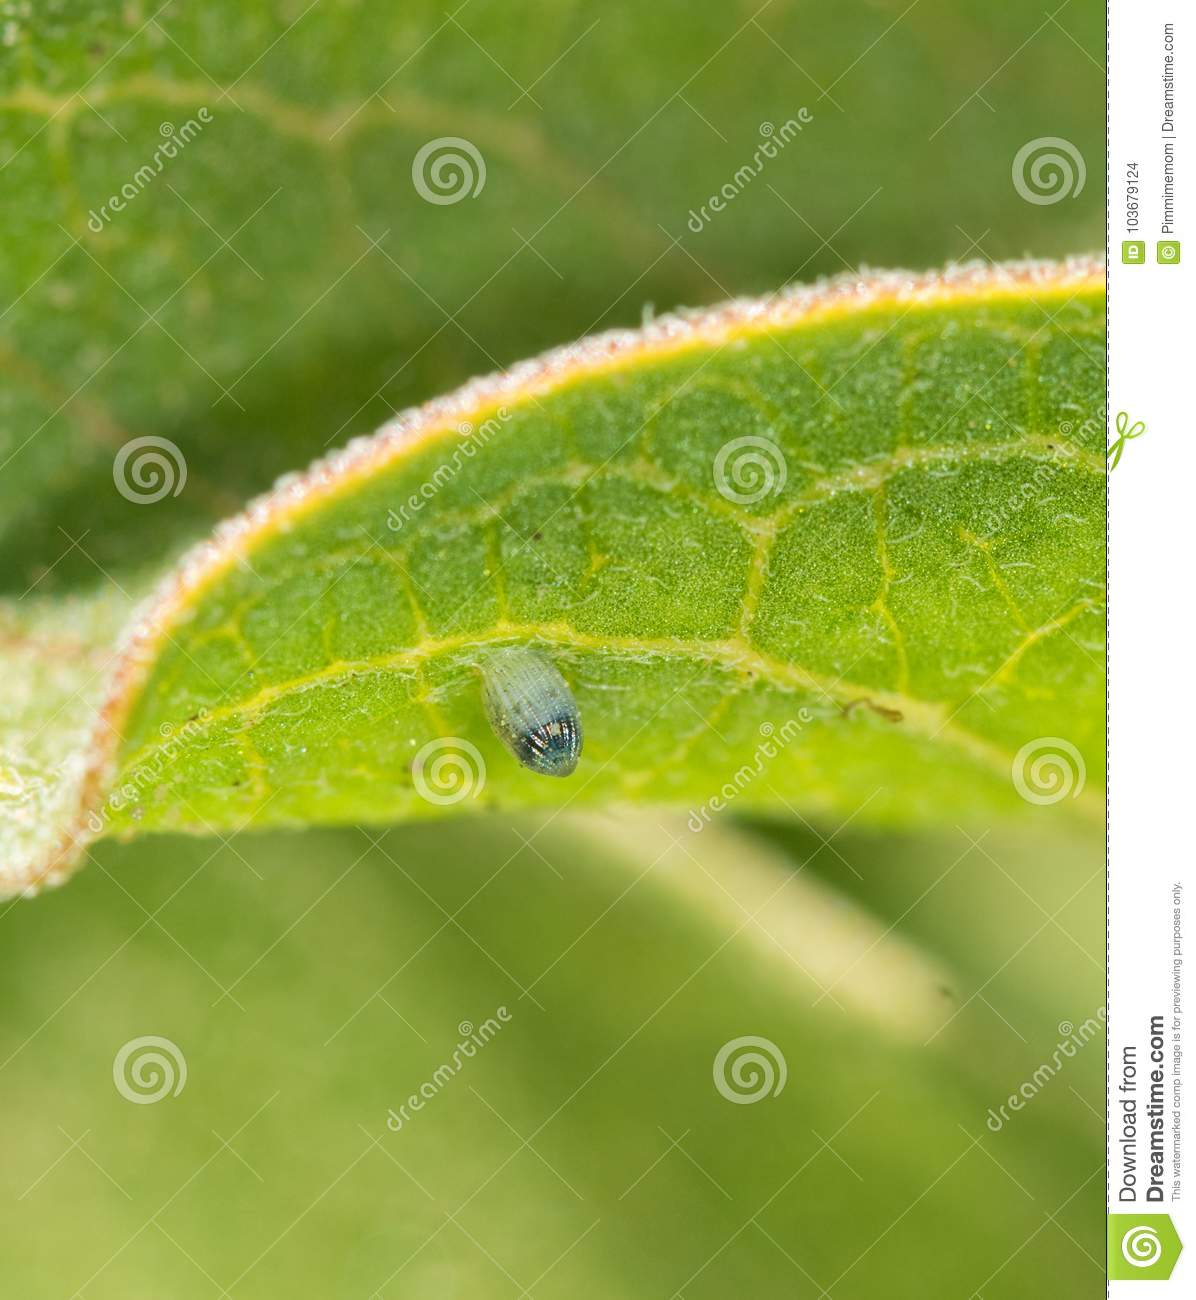 Monarch butterfly egg attached to a Milkweed leaf